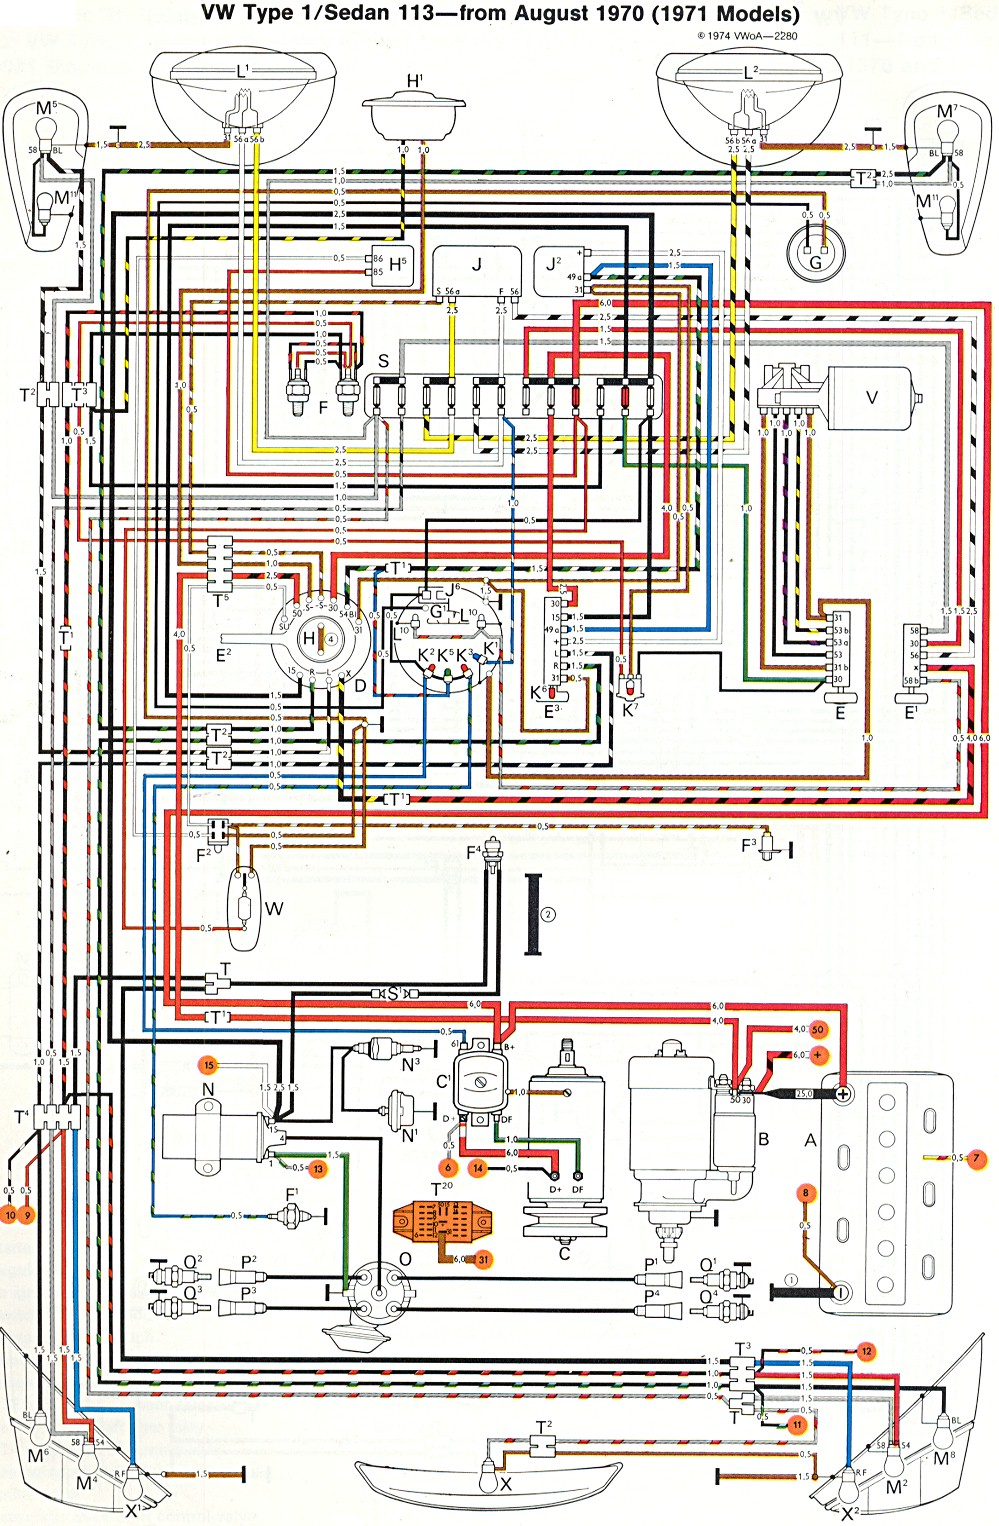 bug_super_71 2002 vw beetle wiring diagram altenator wiring diagram 2002 vw Wiring Harness Diagram at fashall.co